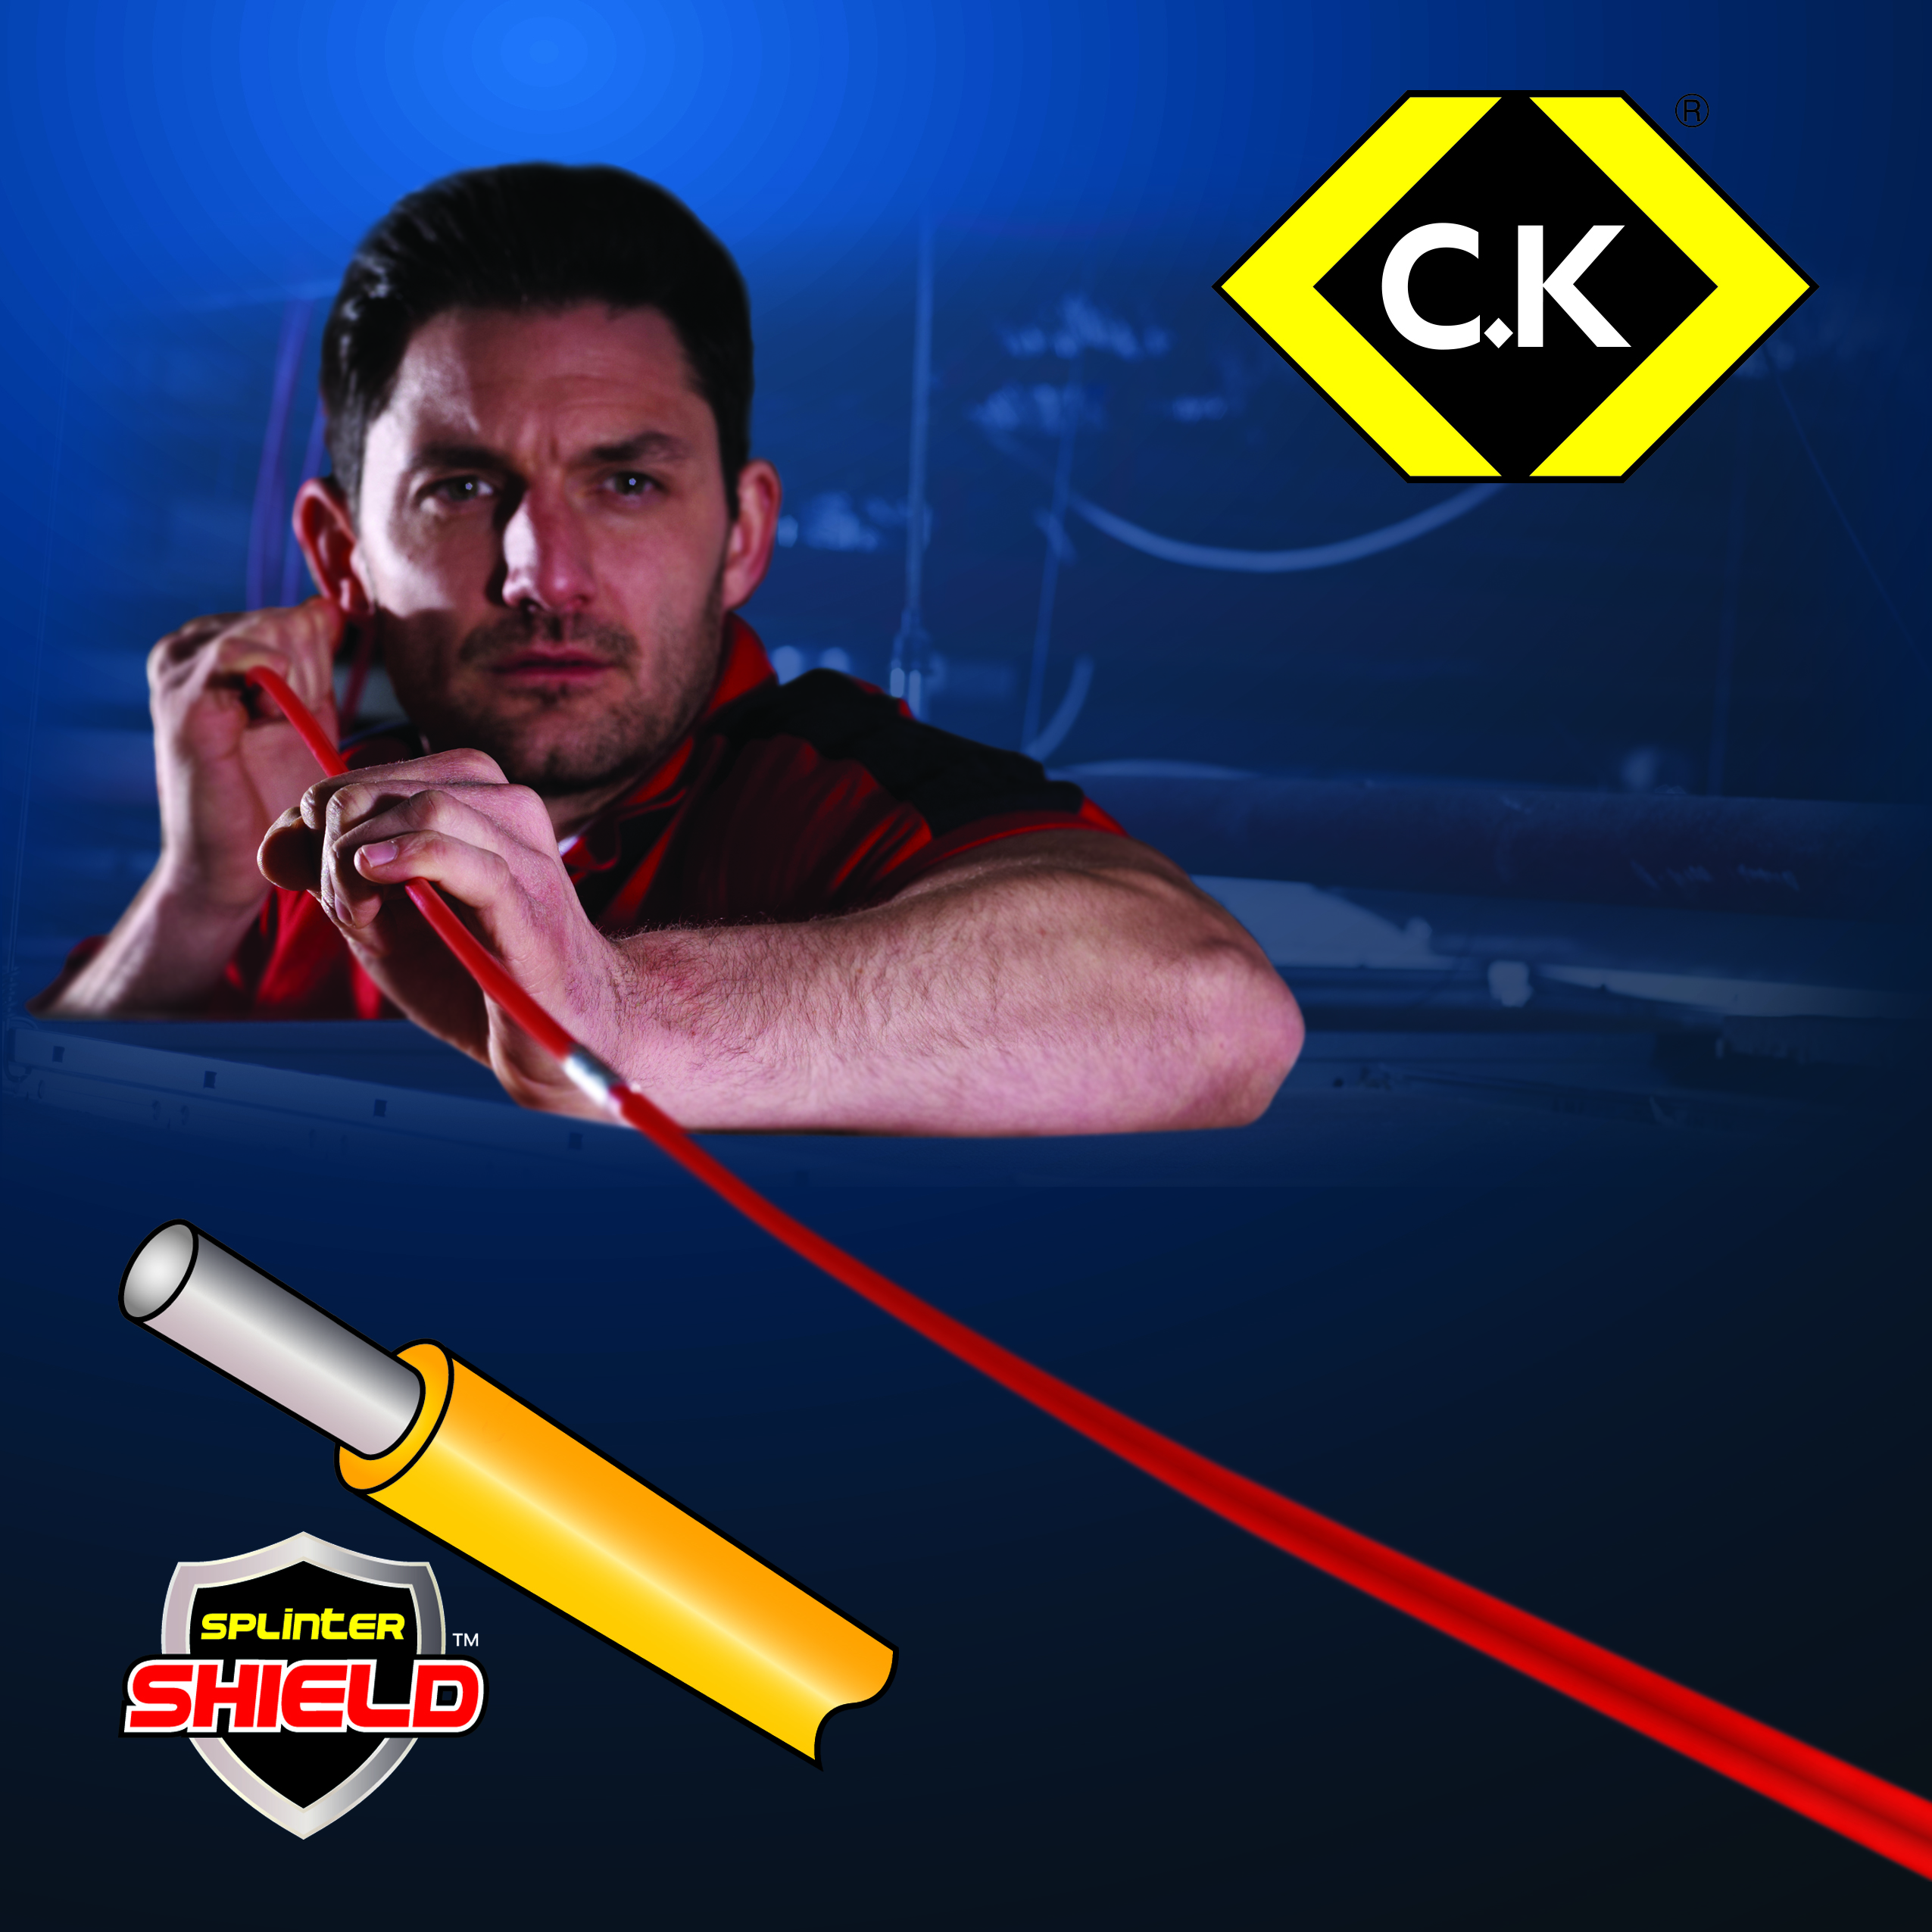 C.K Cable Routing Solutions to the Rescue!